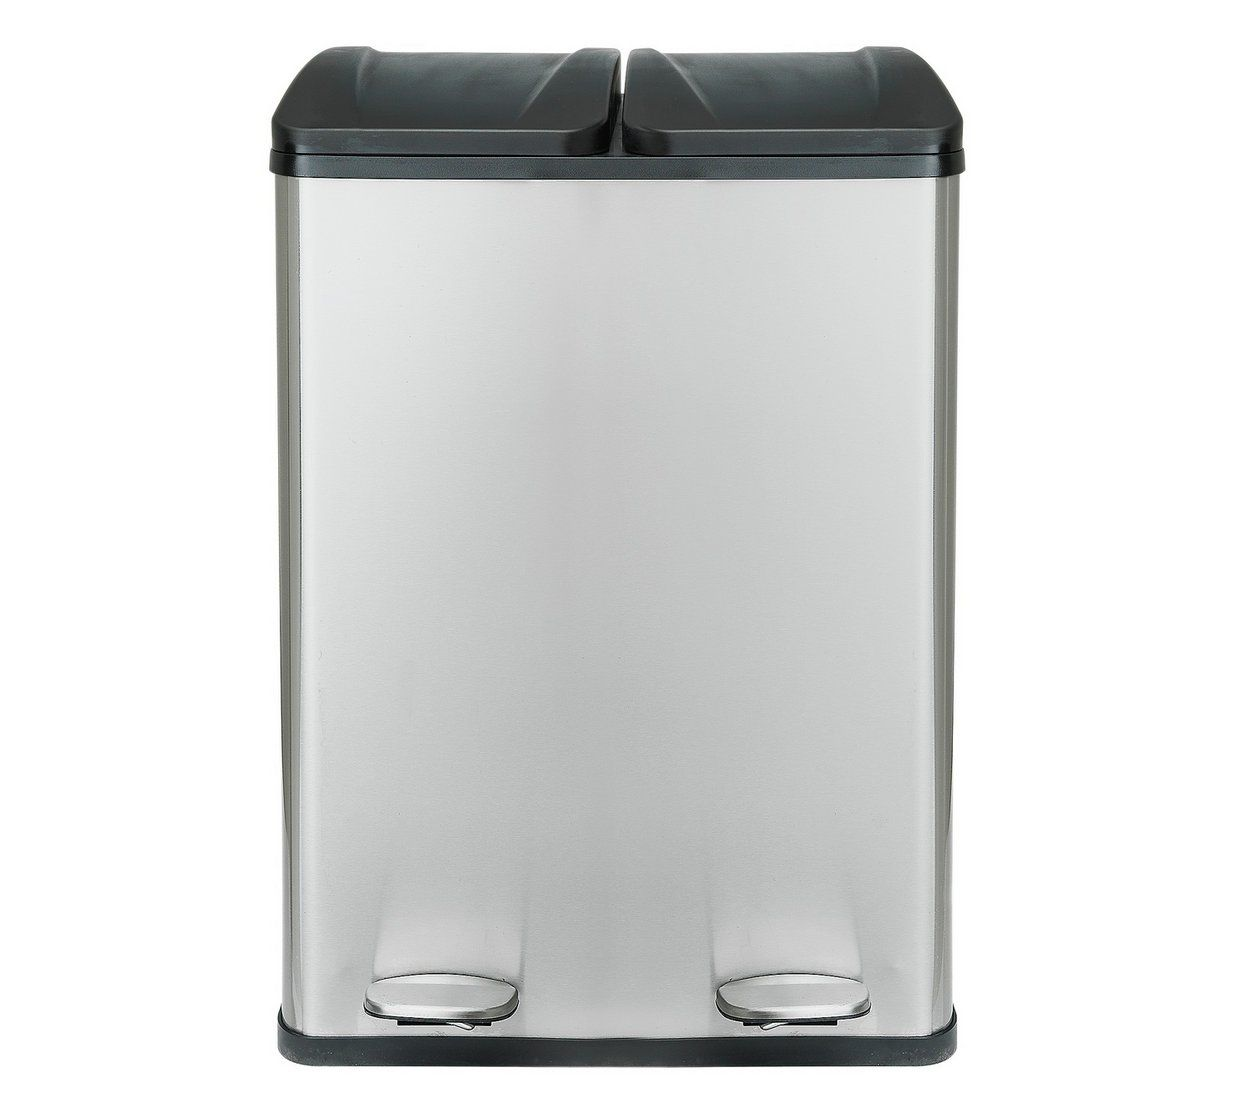 Buy Argos Home 60 Litre 2 Compartment Recycling Bin Kitchen Bins